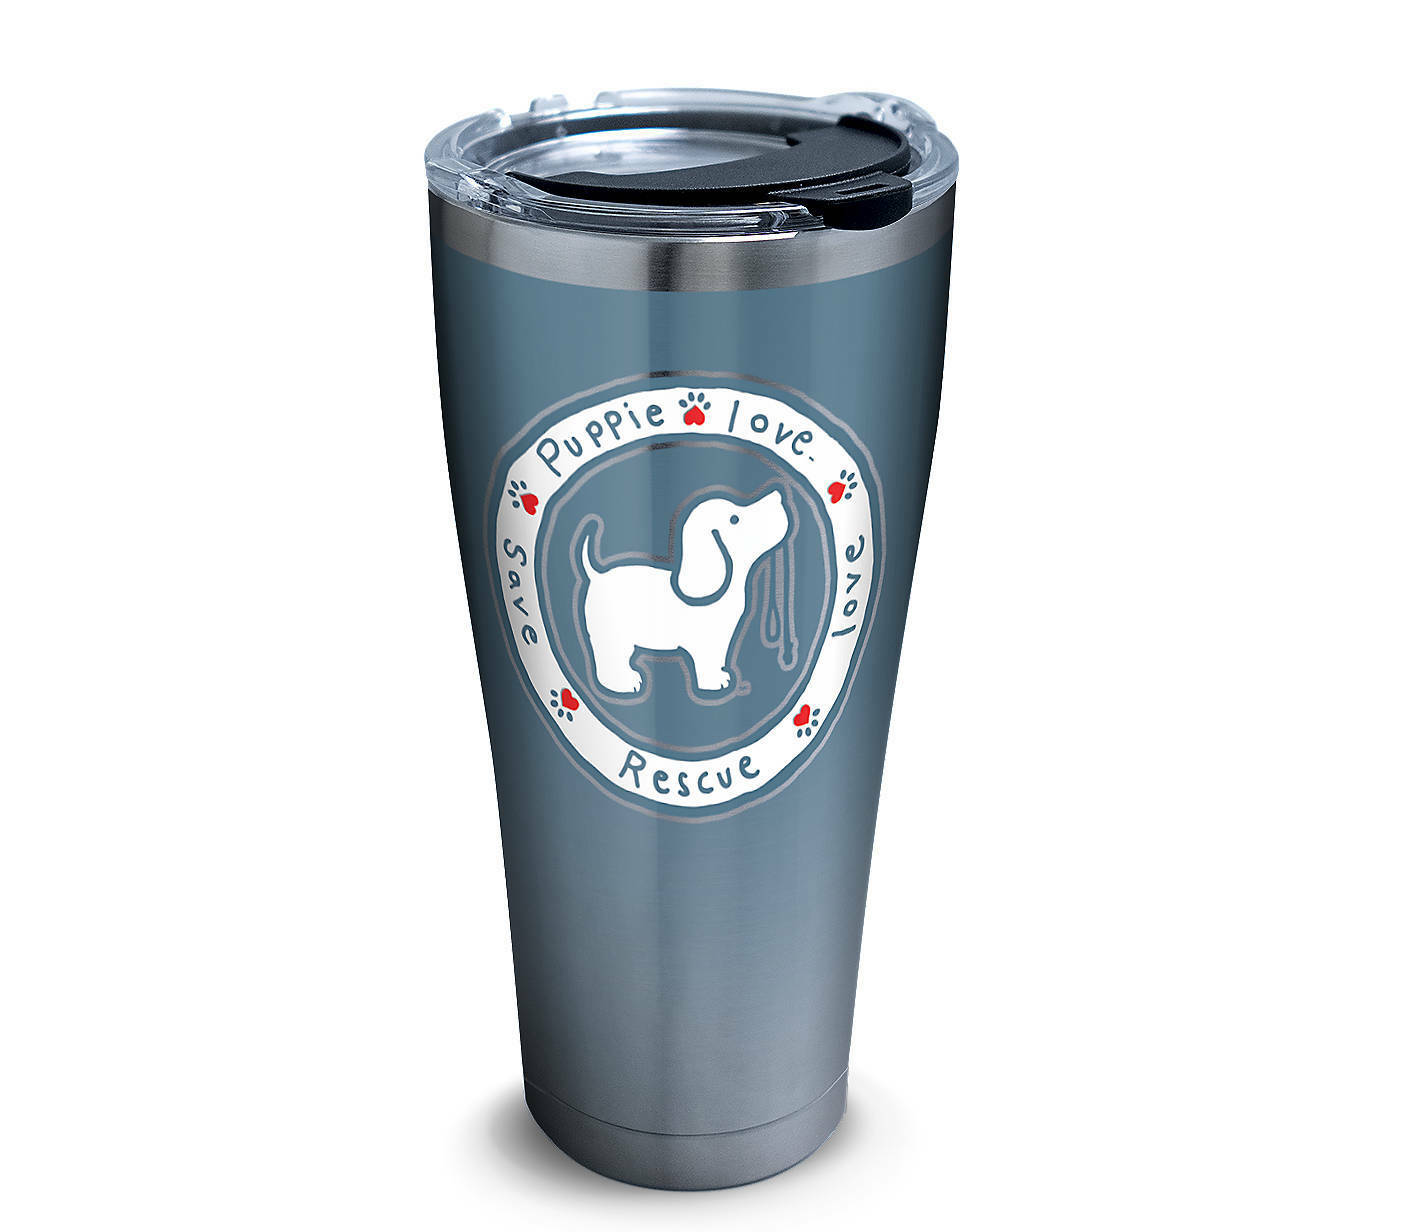 Tervis Tumbler Company - Stainless Steel Tumbler 30oz, bluee Pup - 1293634